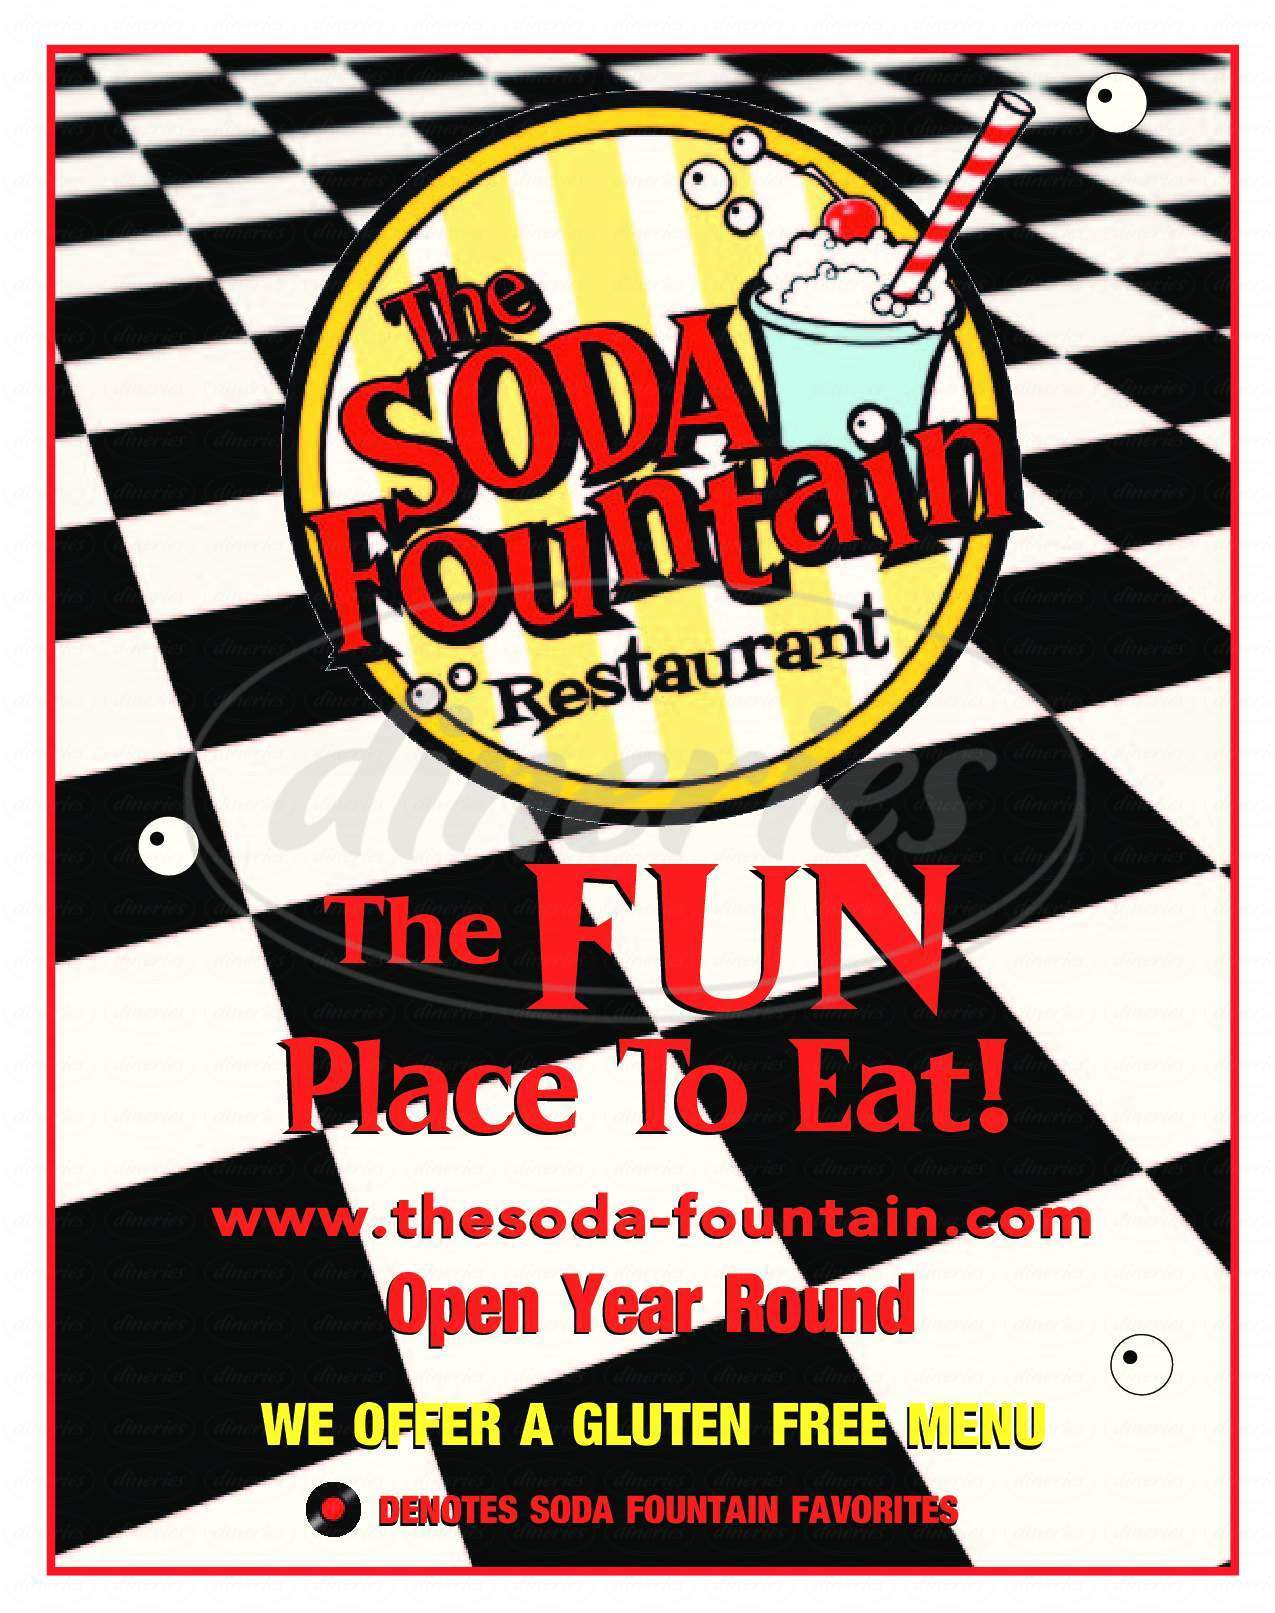 menu for The Soda Fountain Restaurant